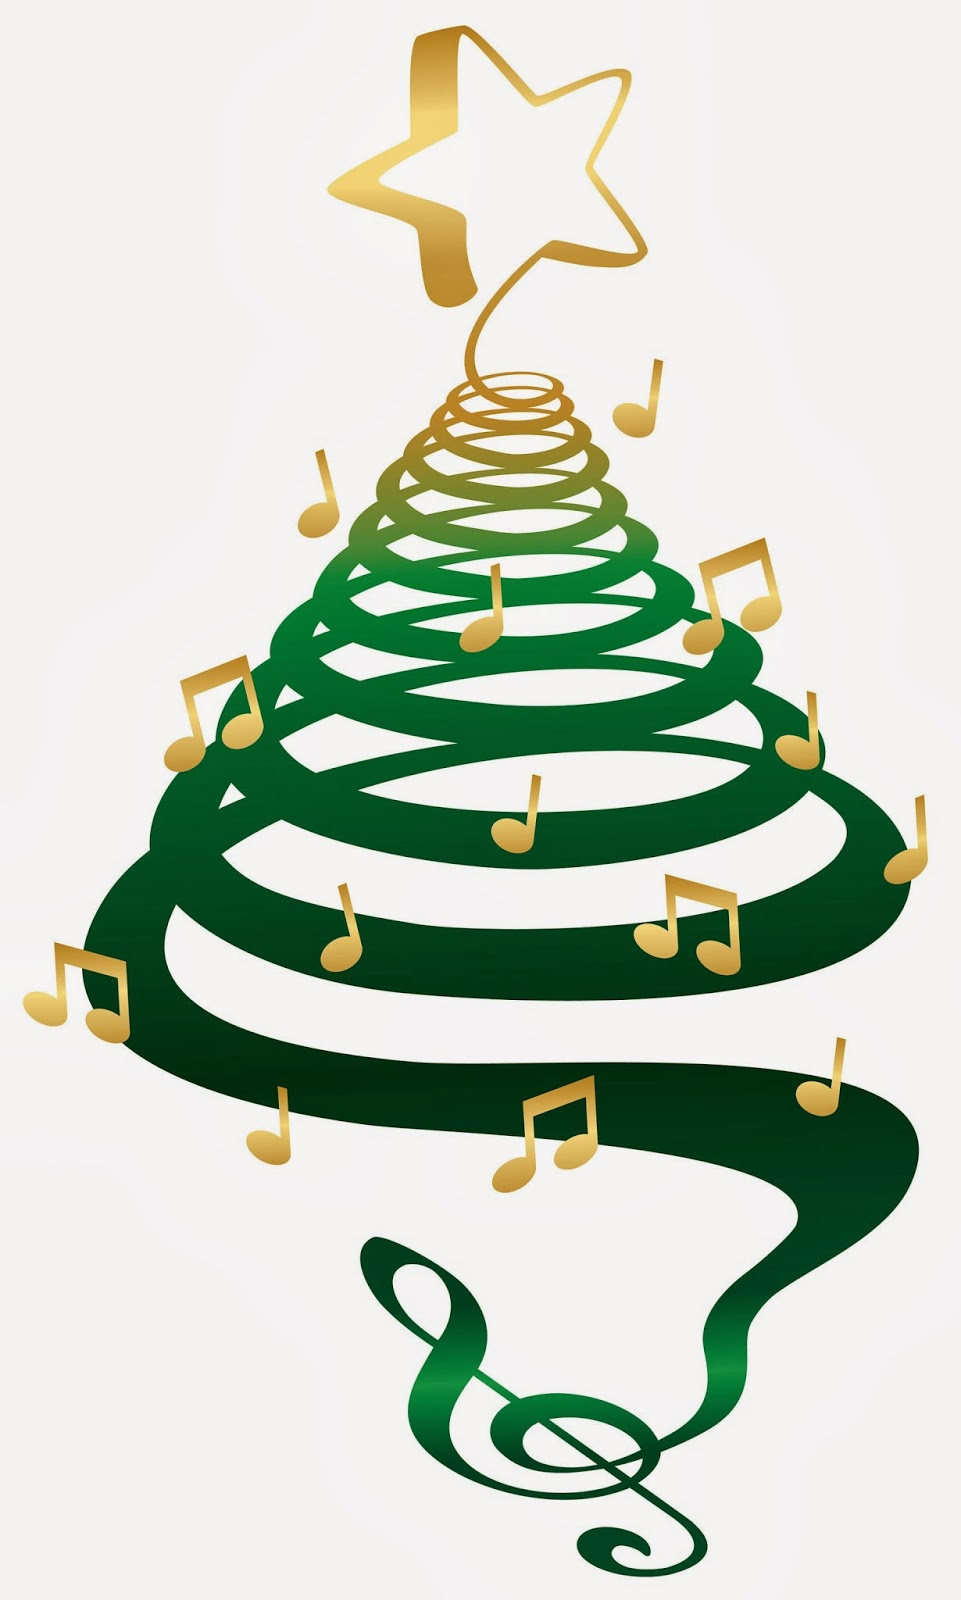 961x1600 Christmas Tree Music Notes Clipart Panda Free Images 961 1600